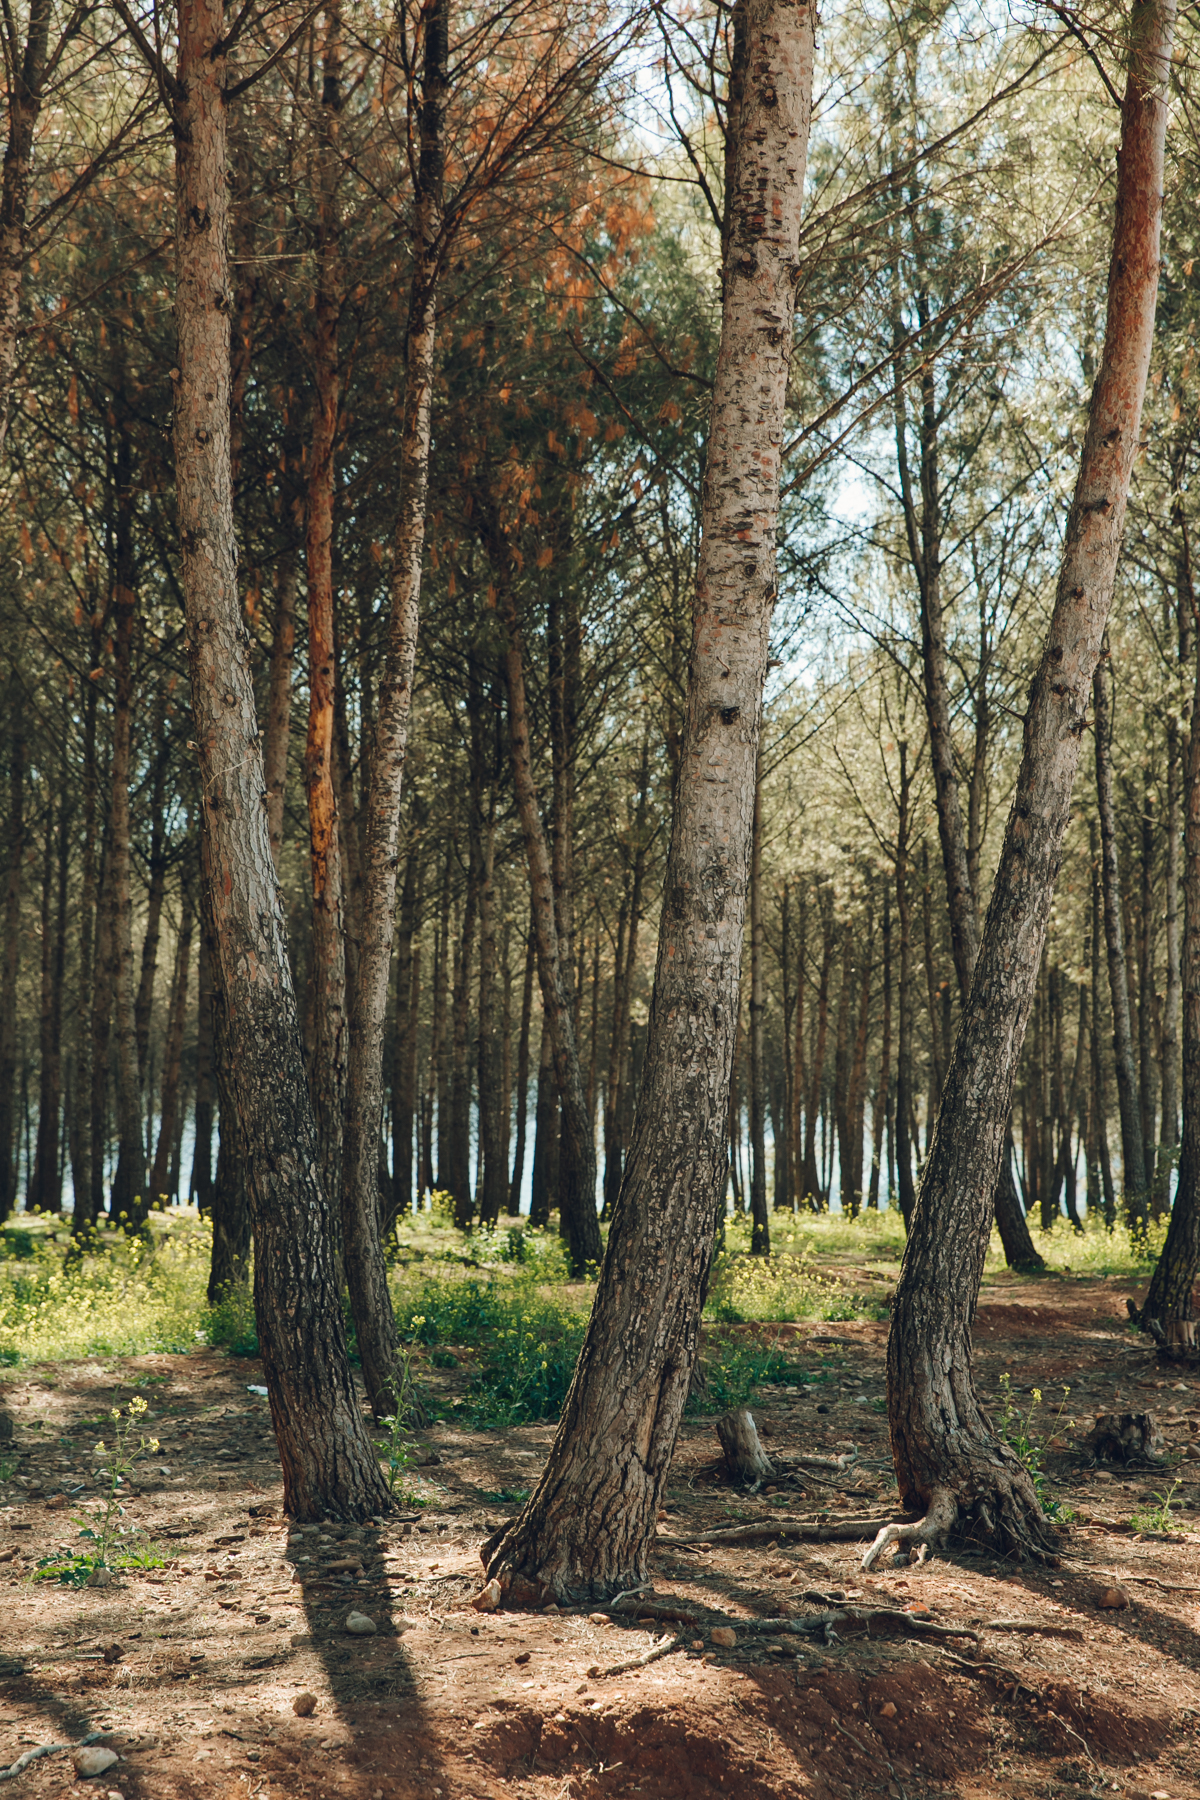 Pine woods in Andalusia.